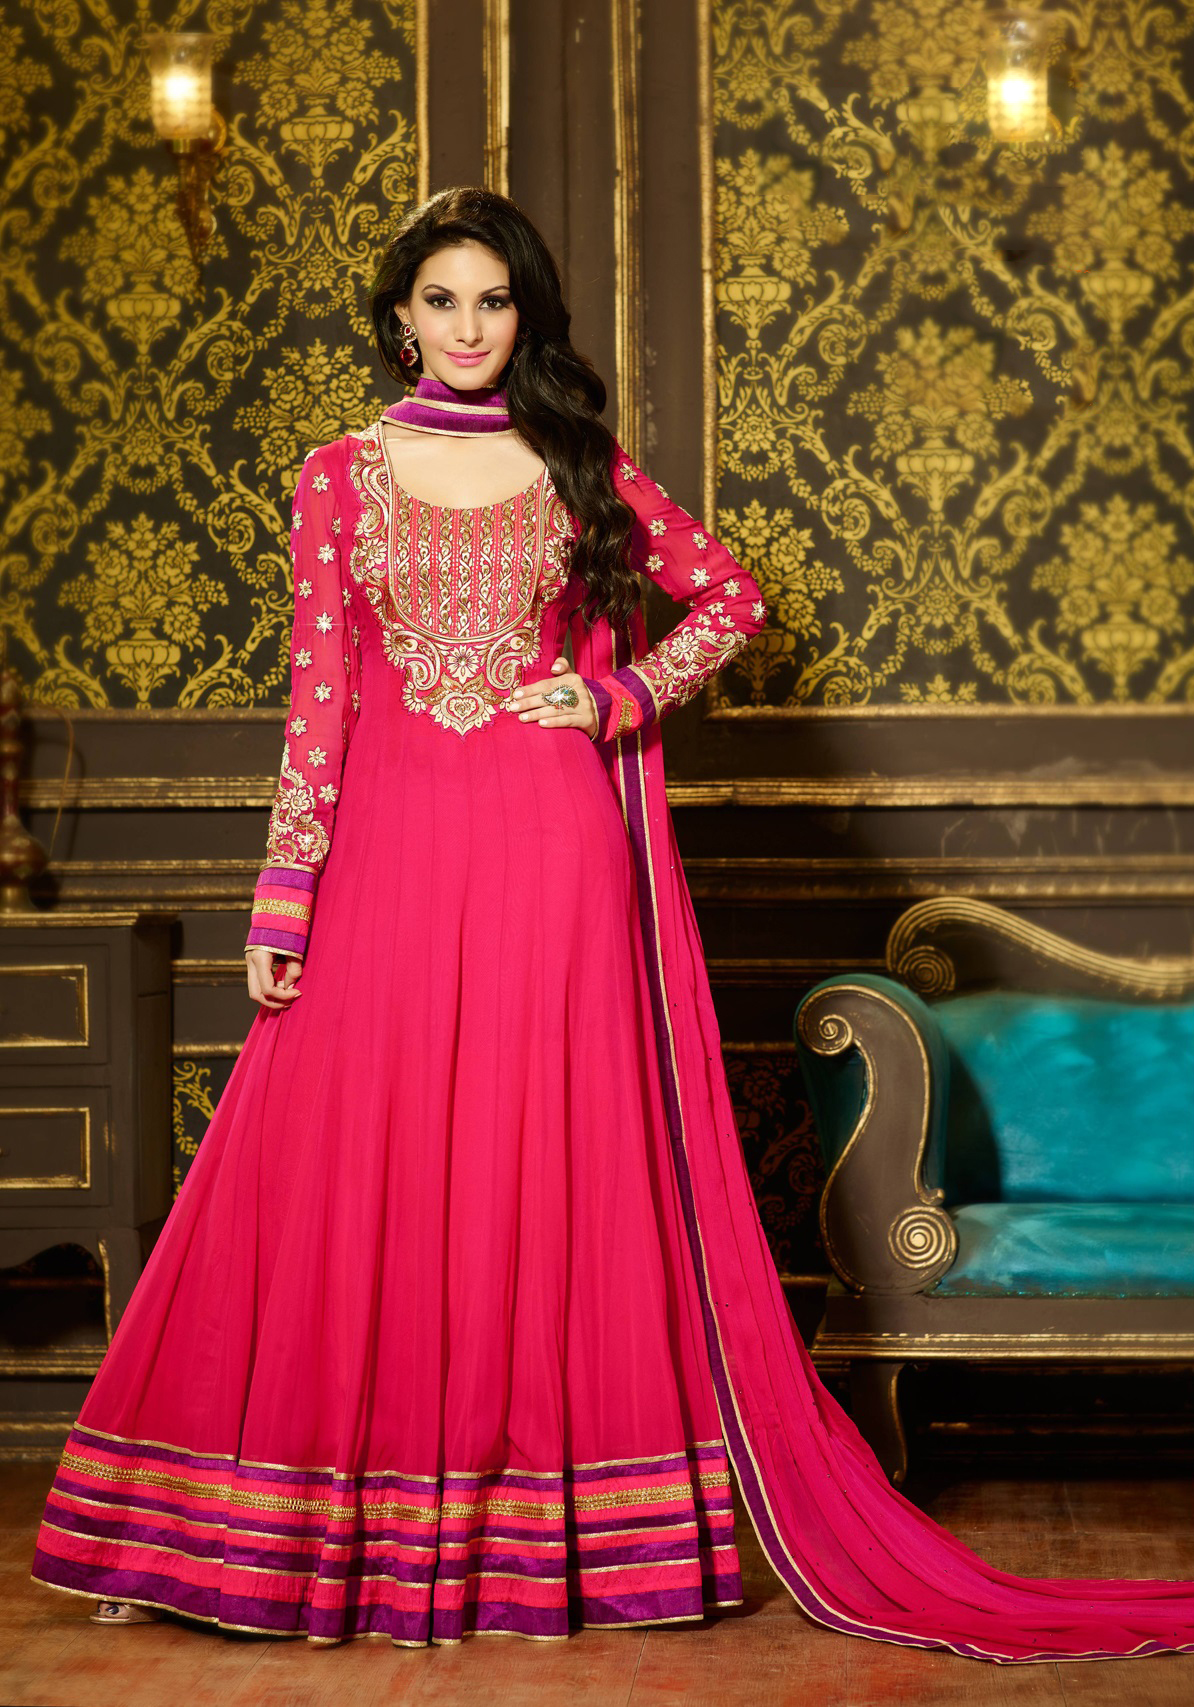 63c13a5c1f4 16 Outfits That Make You Look Awesome at the Indian Wedding - Outfit ...